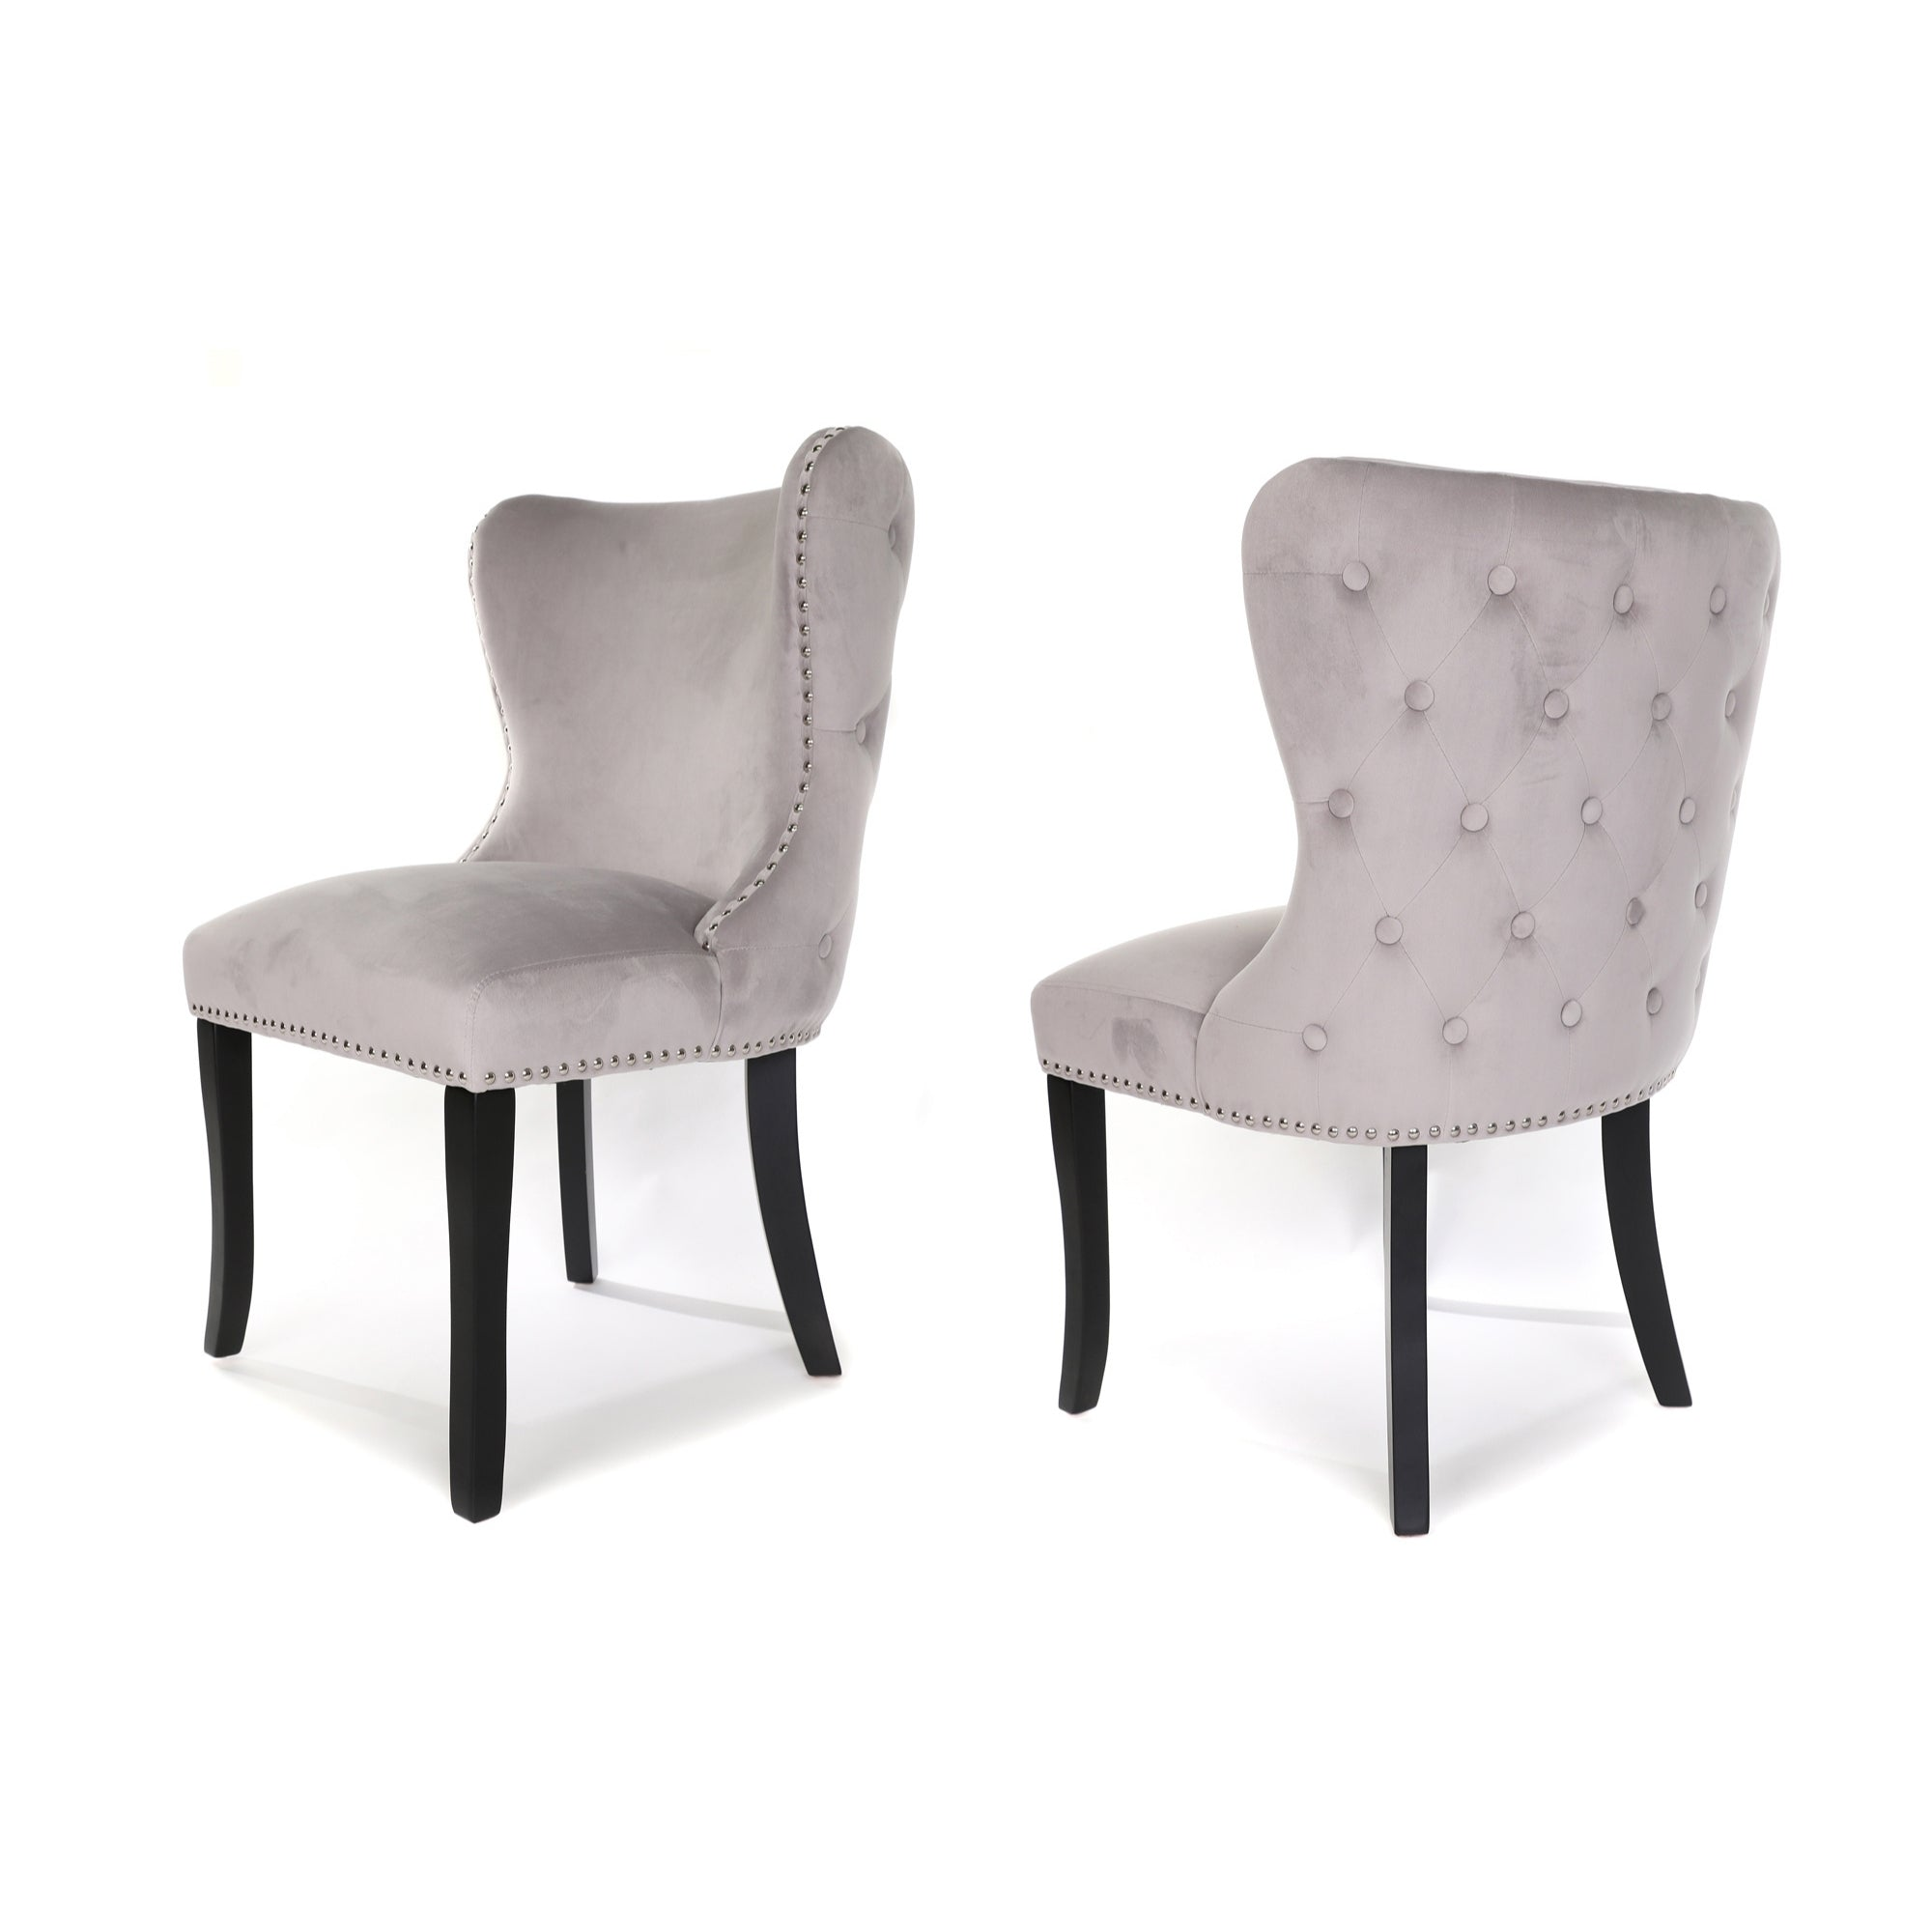 Luci Dining Chair, Soft Foggy Grey velvet, Black wood leg and Buttoned Back